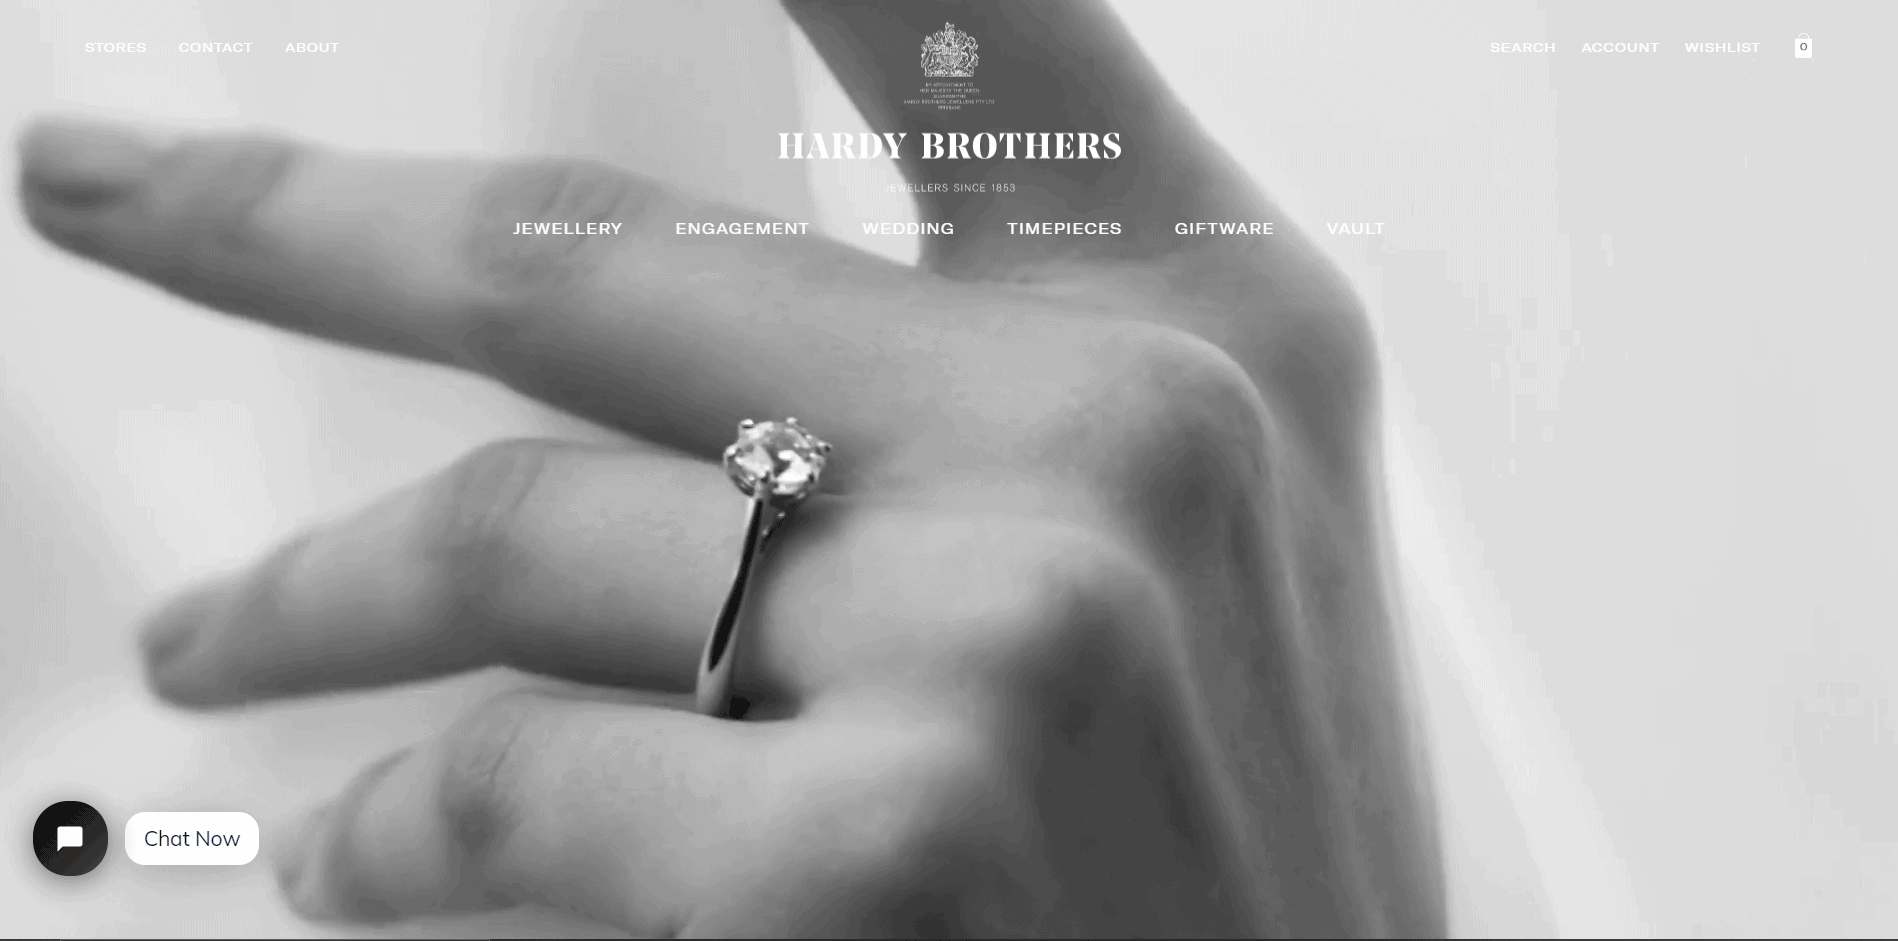 hardy brothers jewellers